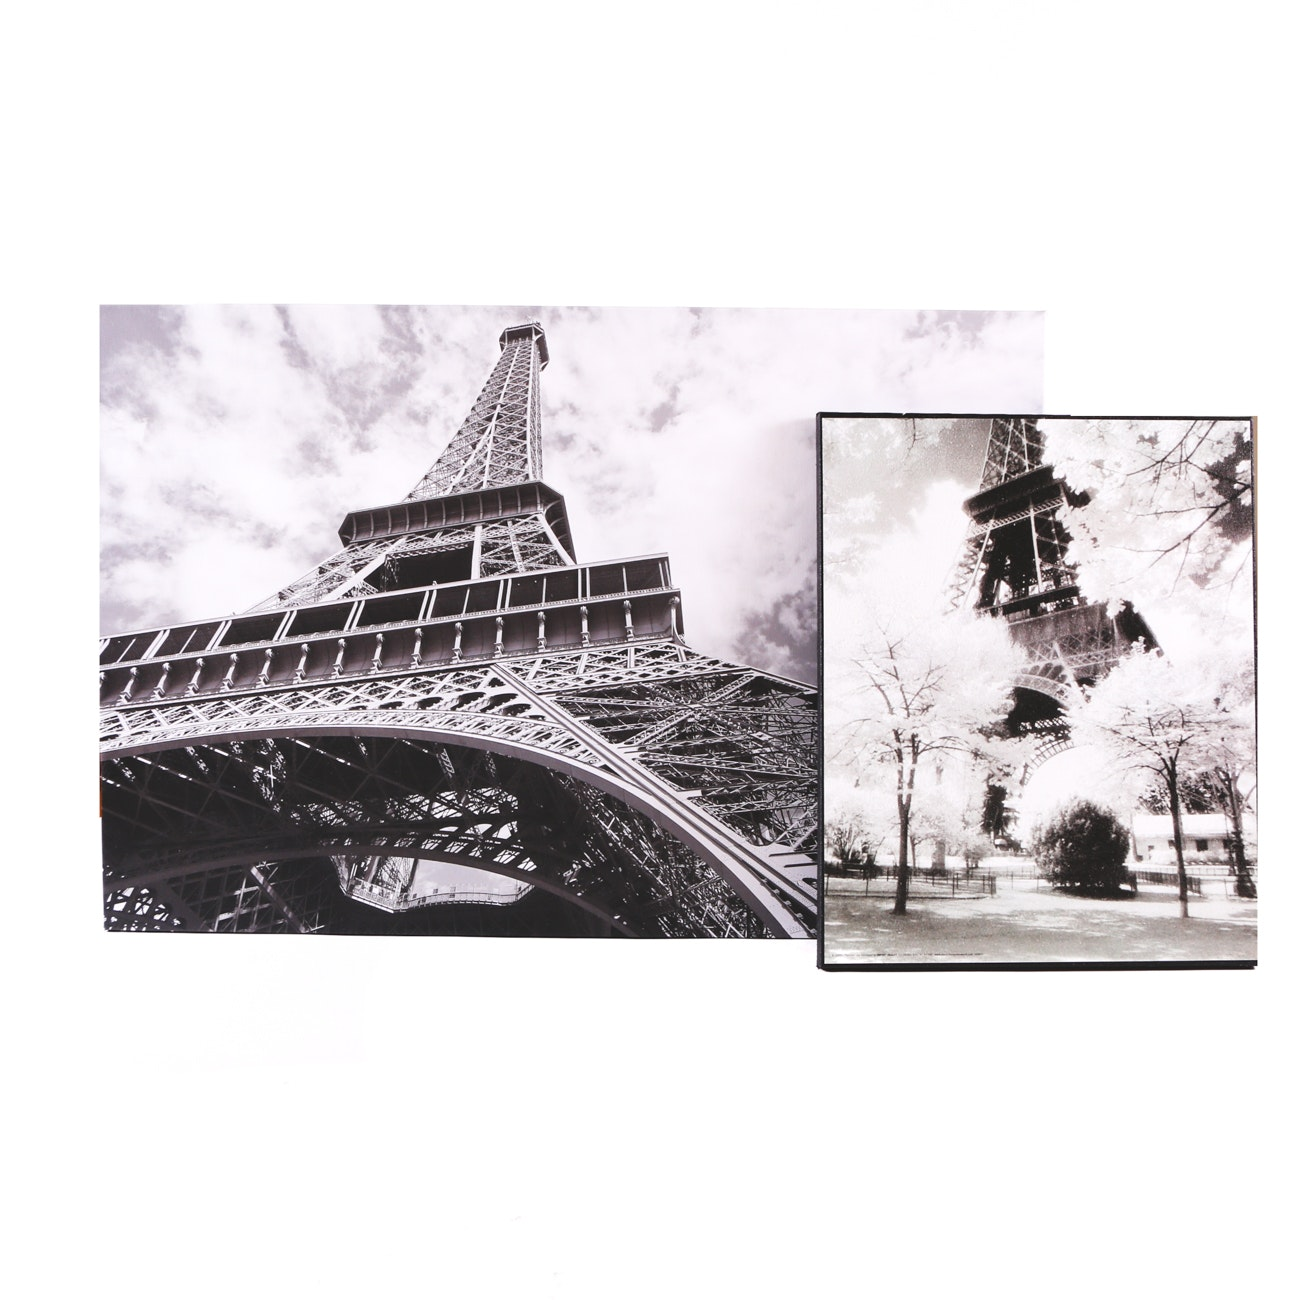 Pair of Photographs on Canvas